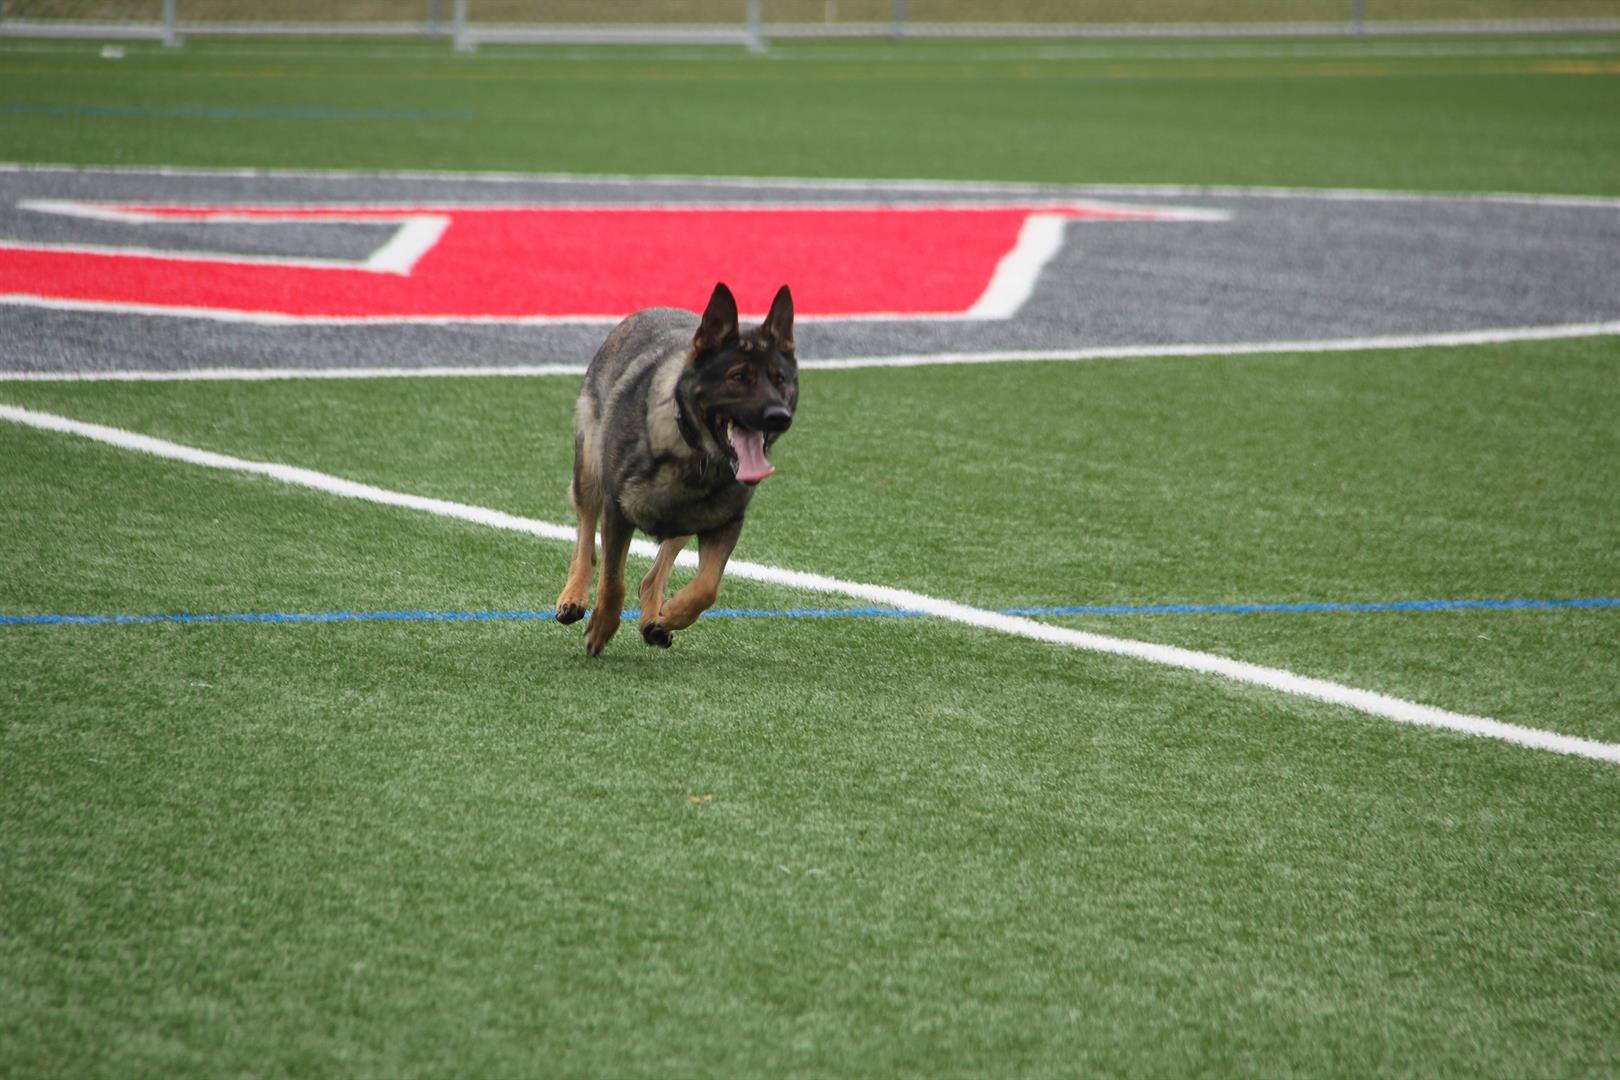 Anouk the police dog running